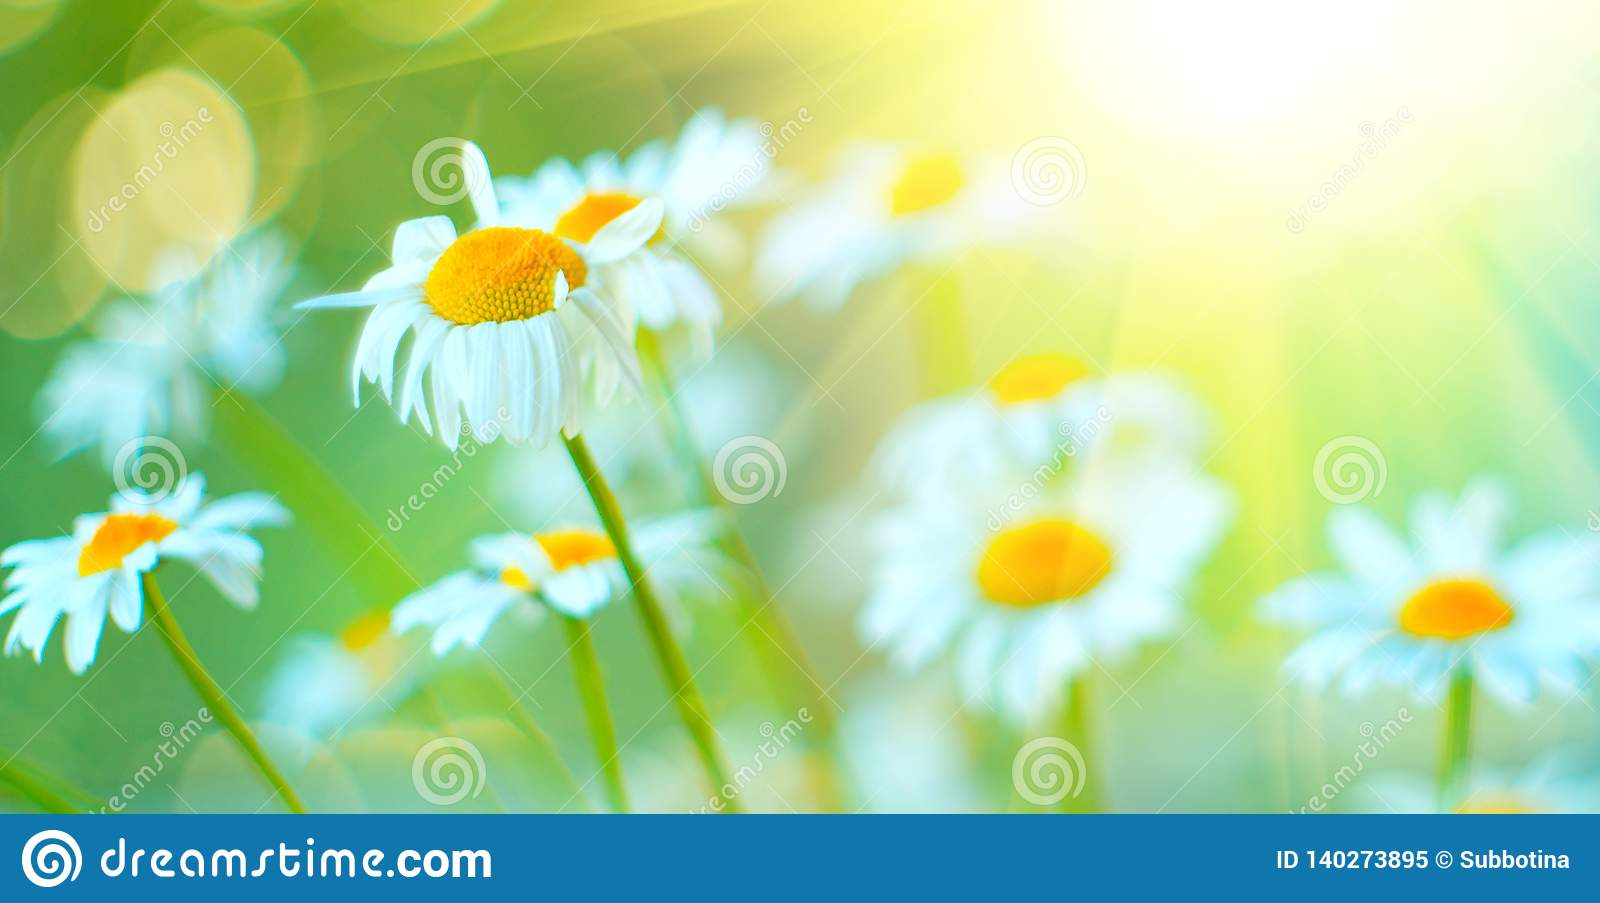 Chamomile field flowers border. Beautiful nature scene with blooming chamomiles in sun flares